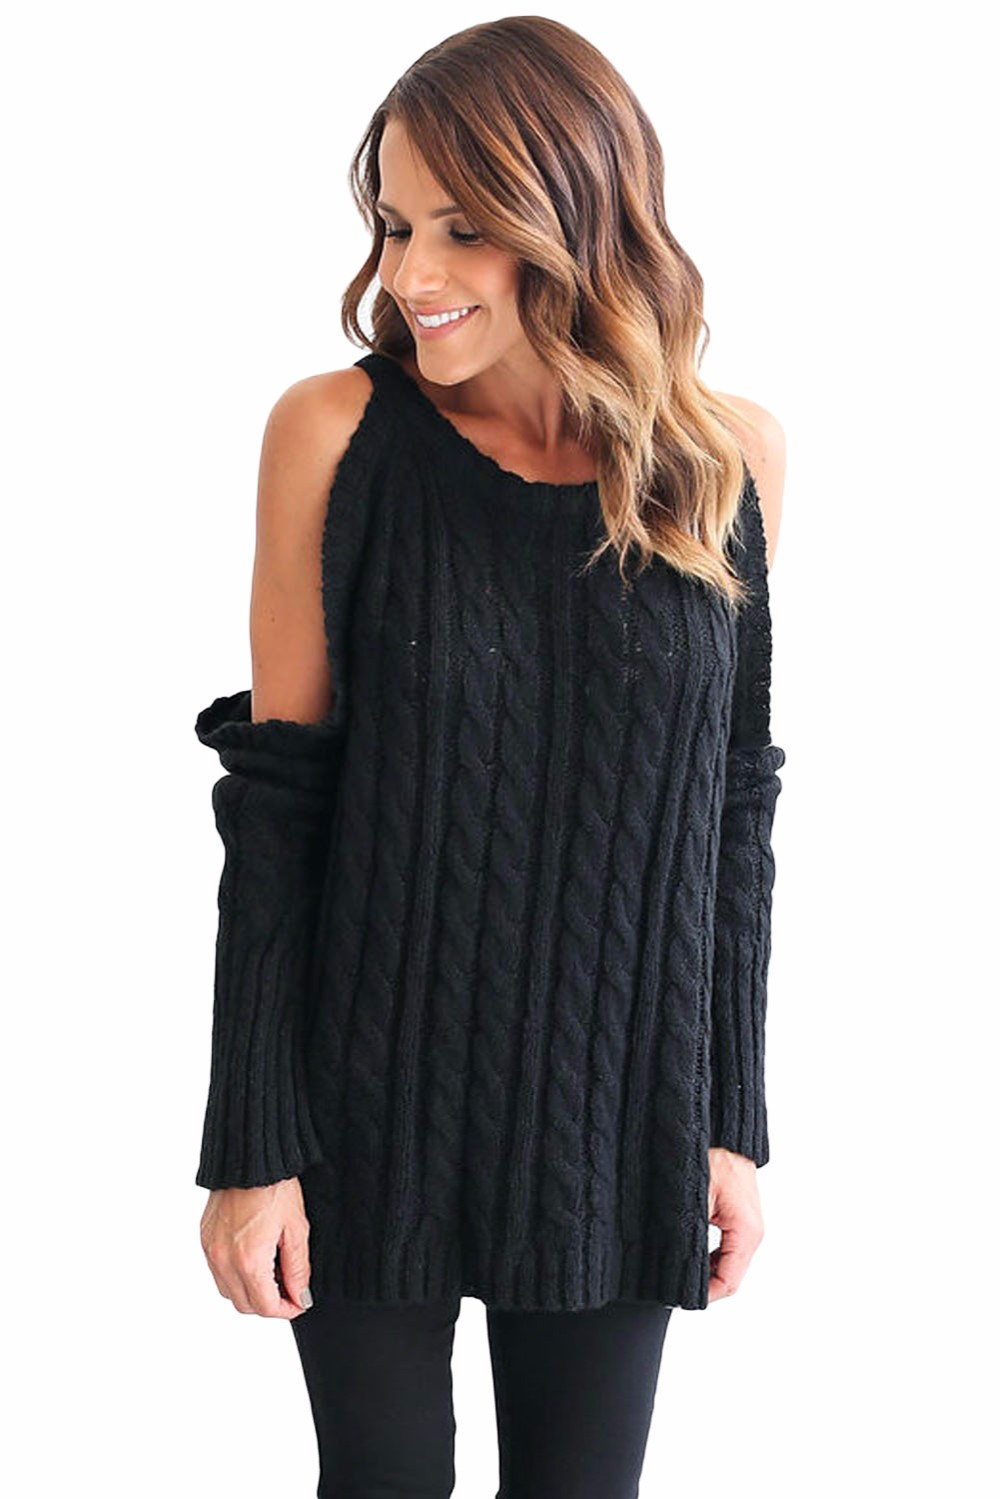 Black-Daring-Cold-Shoulder-Cable-Knit-Sweater-LC27653-2-1